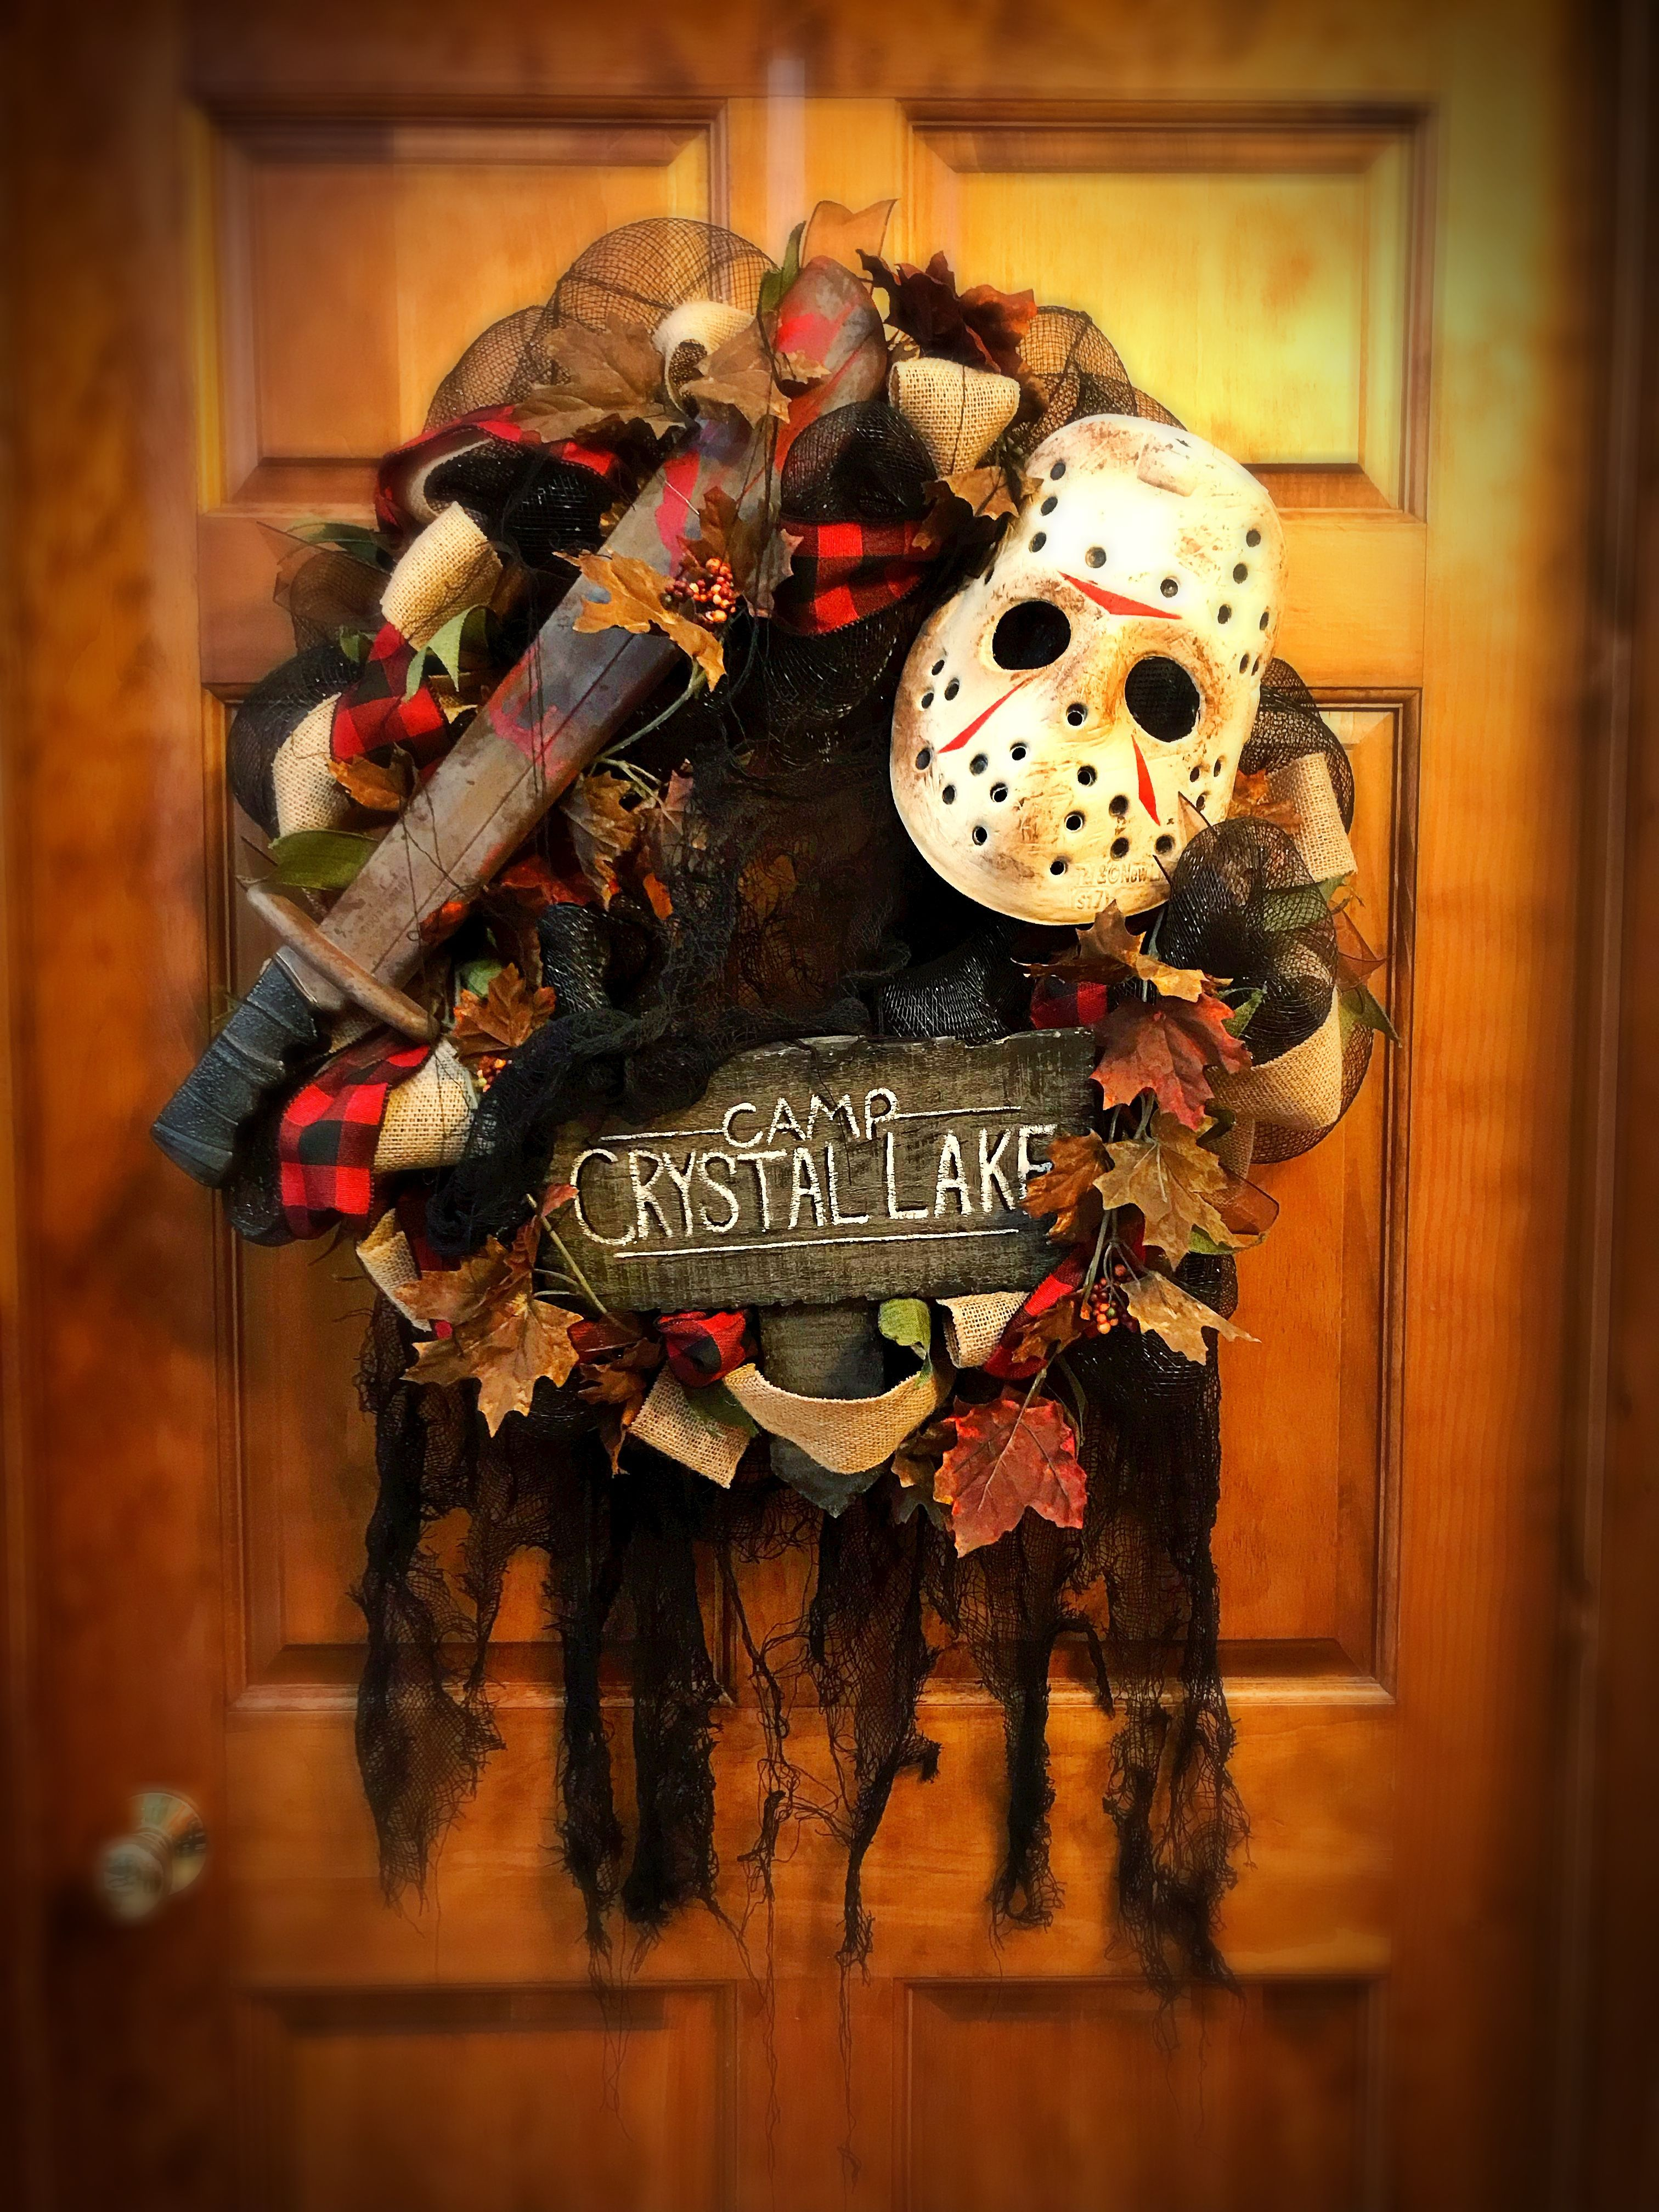 Jason - Friday the 13th Wreath #halloweenwreaths Jason - Friday the 13th Wreath #halloweenwreaths